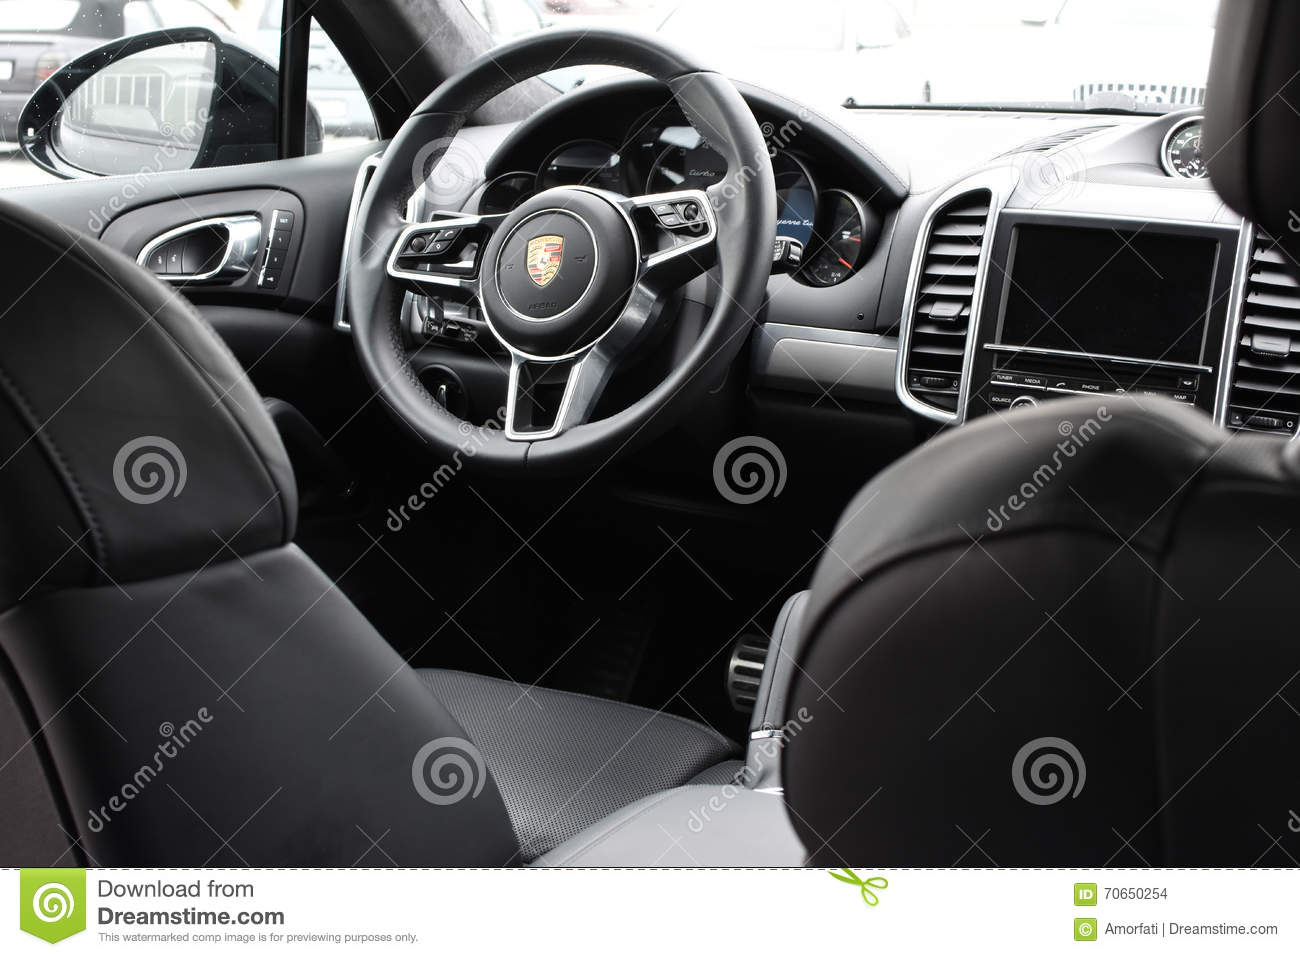 deggendorf germany 23 april 2016 interior of a 2016 porsche cayenne turbo suv during the. Black Bedroom Furniture Sets. Home Design Ideas